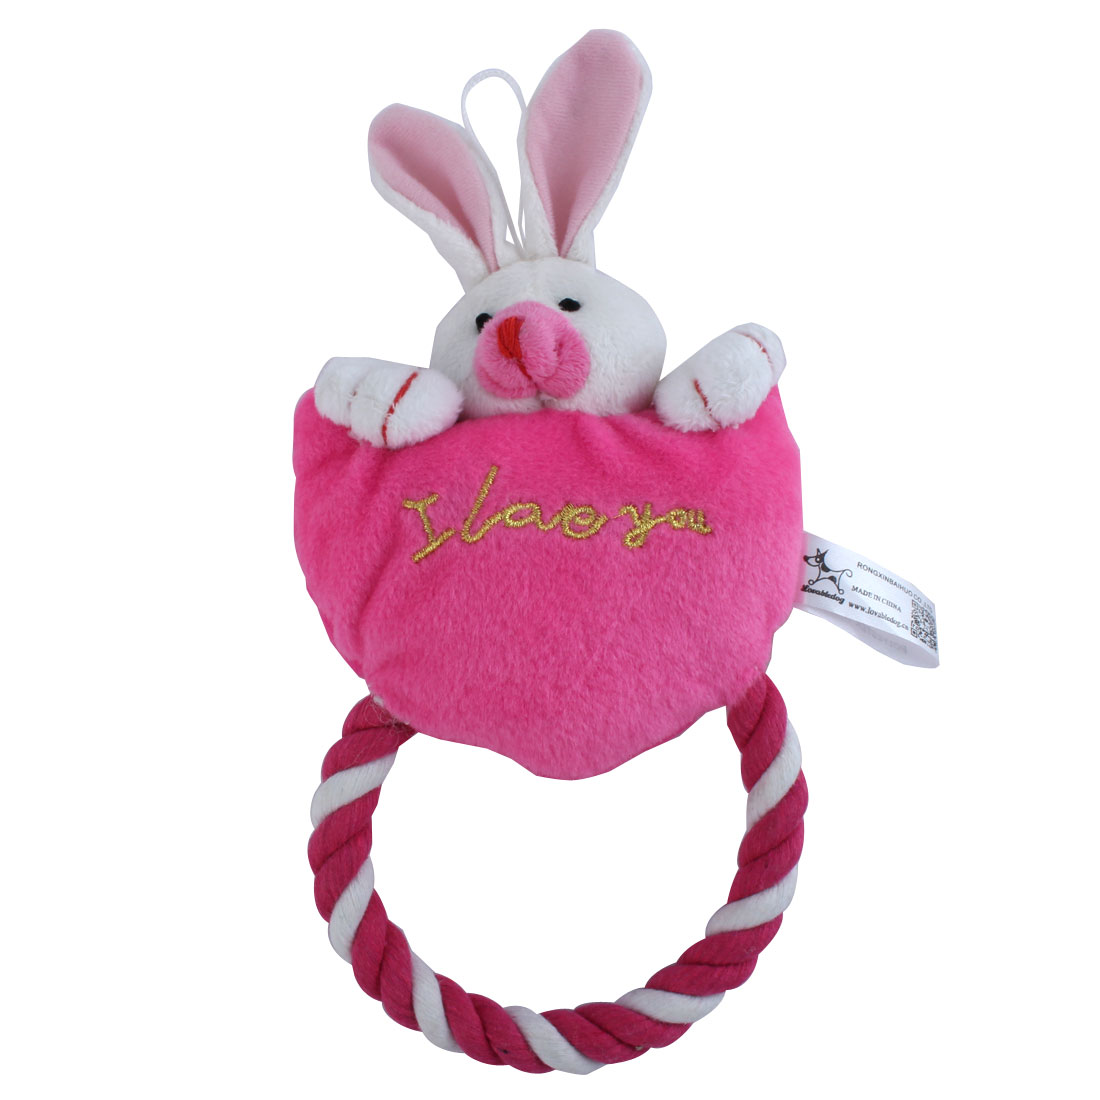 Rabbit Pattern Plush Squeaky Squeaker Toy with Tug Rope for Pet Puppy Dog